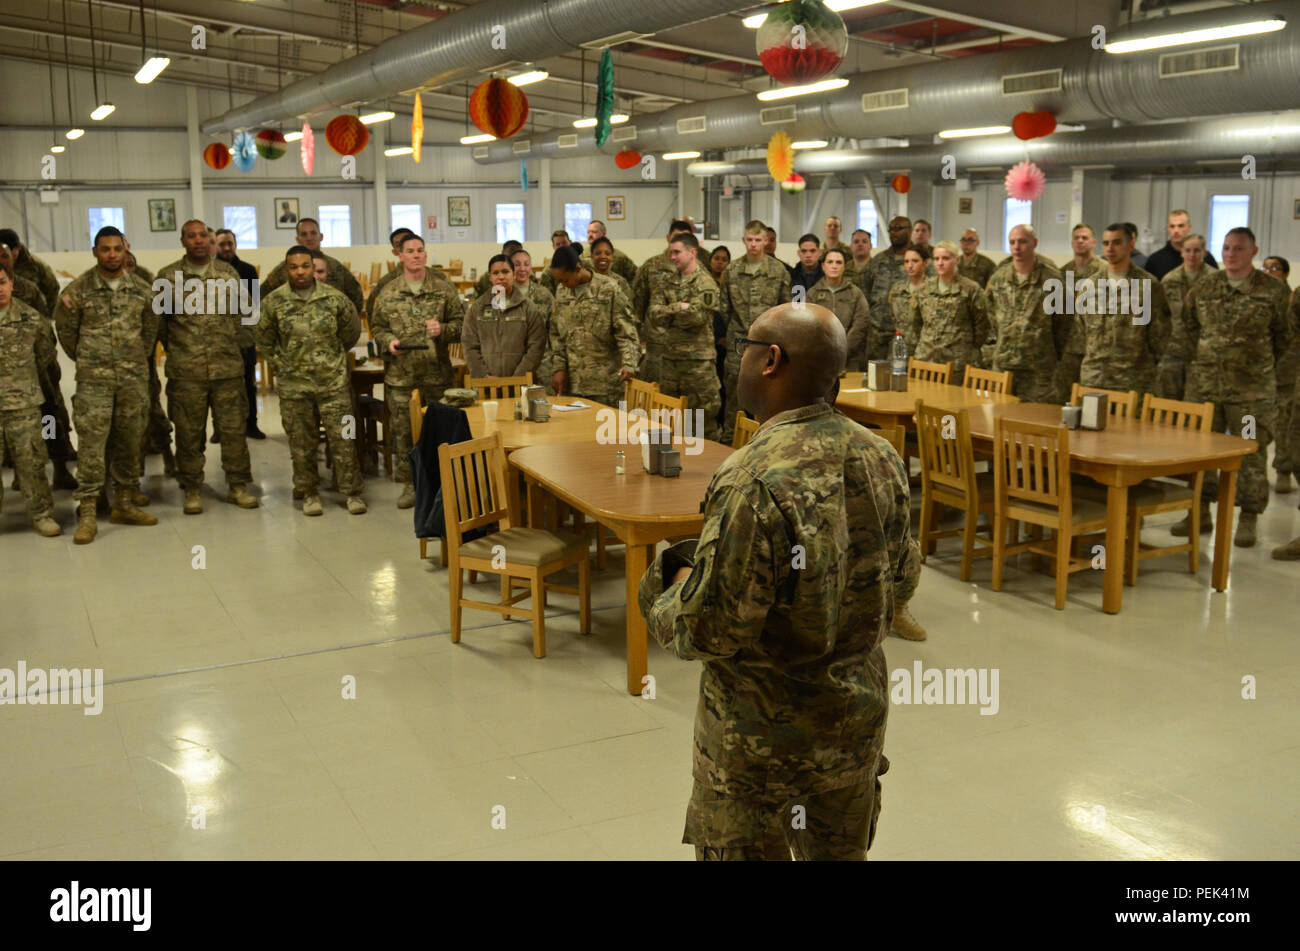 Newly promoted Sgt. Maj. Bryan Smith, the operations noncommissioned officer in charge of 149th Human Resource Texas Army National Guard, originally from Freeport, Texas, thanks his Soldiers and friends for their attendance and support during his promotion ceremony at Mihail Kogălniceanu Air Force Base, Romania, Dec. 10, 2015. (U.S. Army Photo by Staff Sgt. Steven M. Colvin/Released) - Stock Image